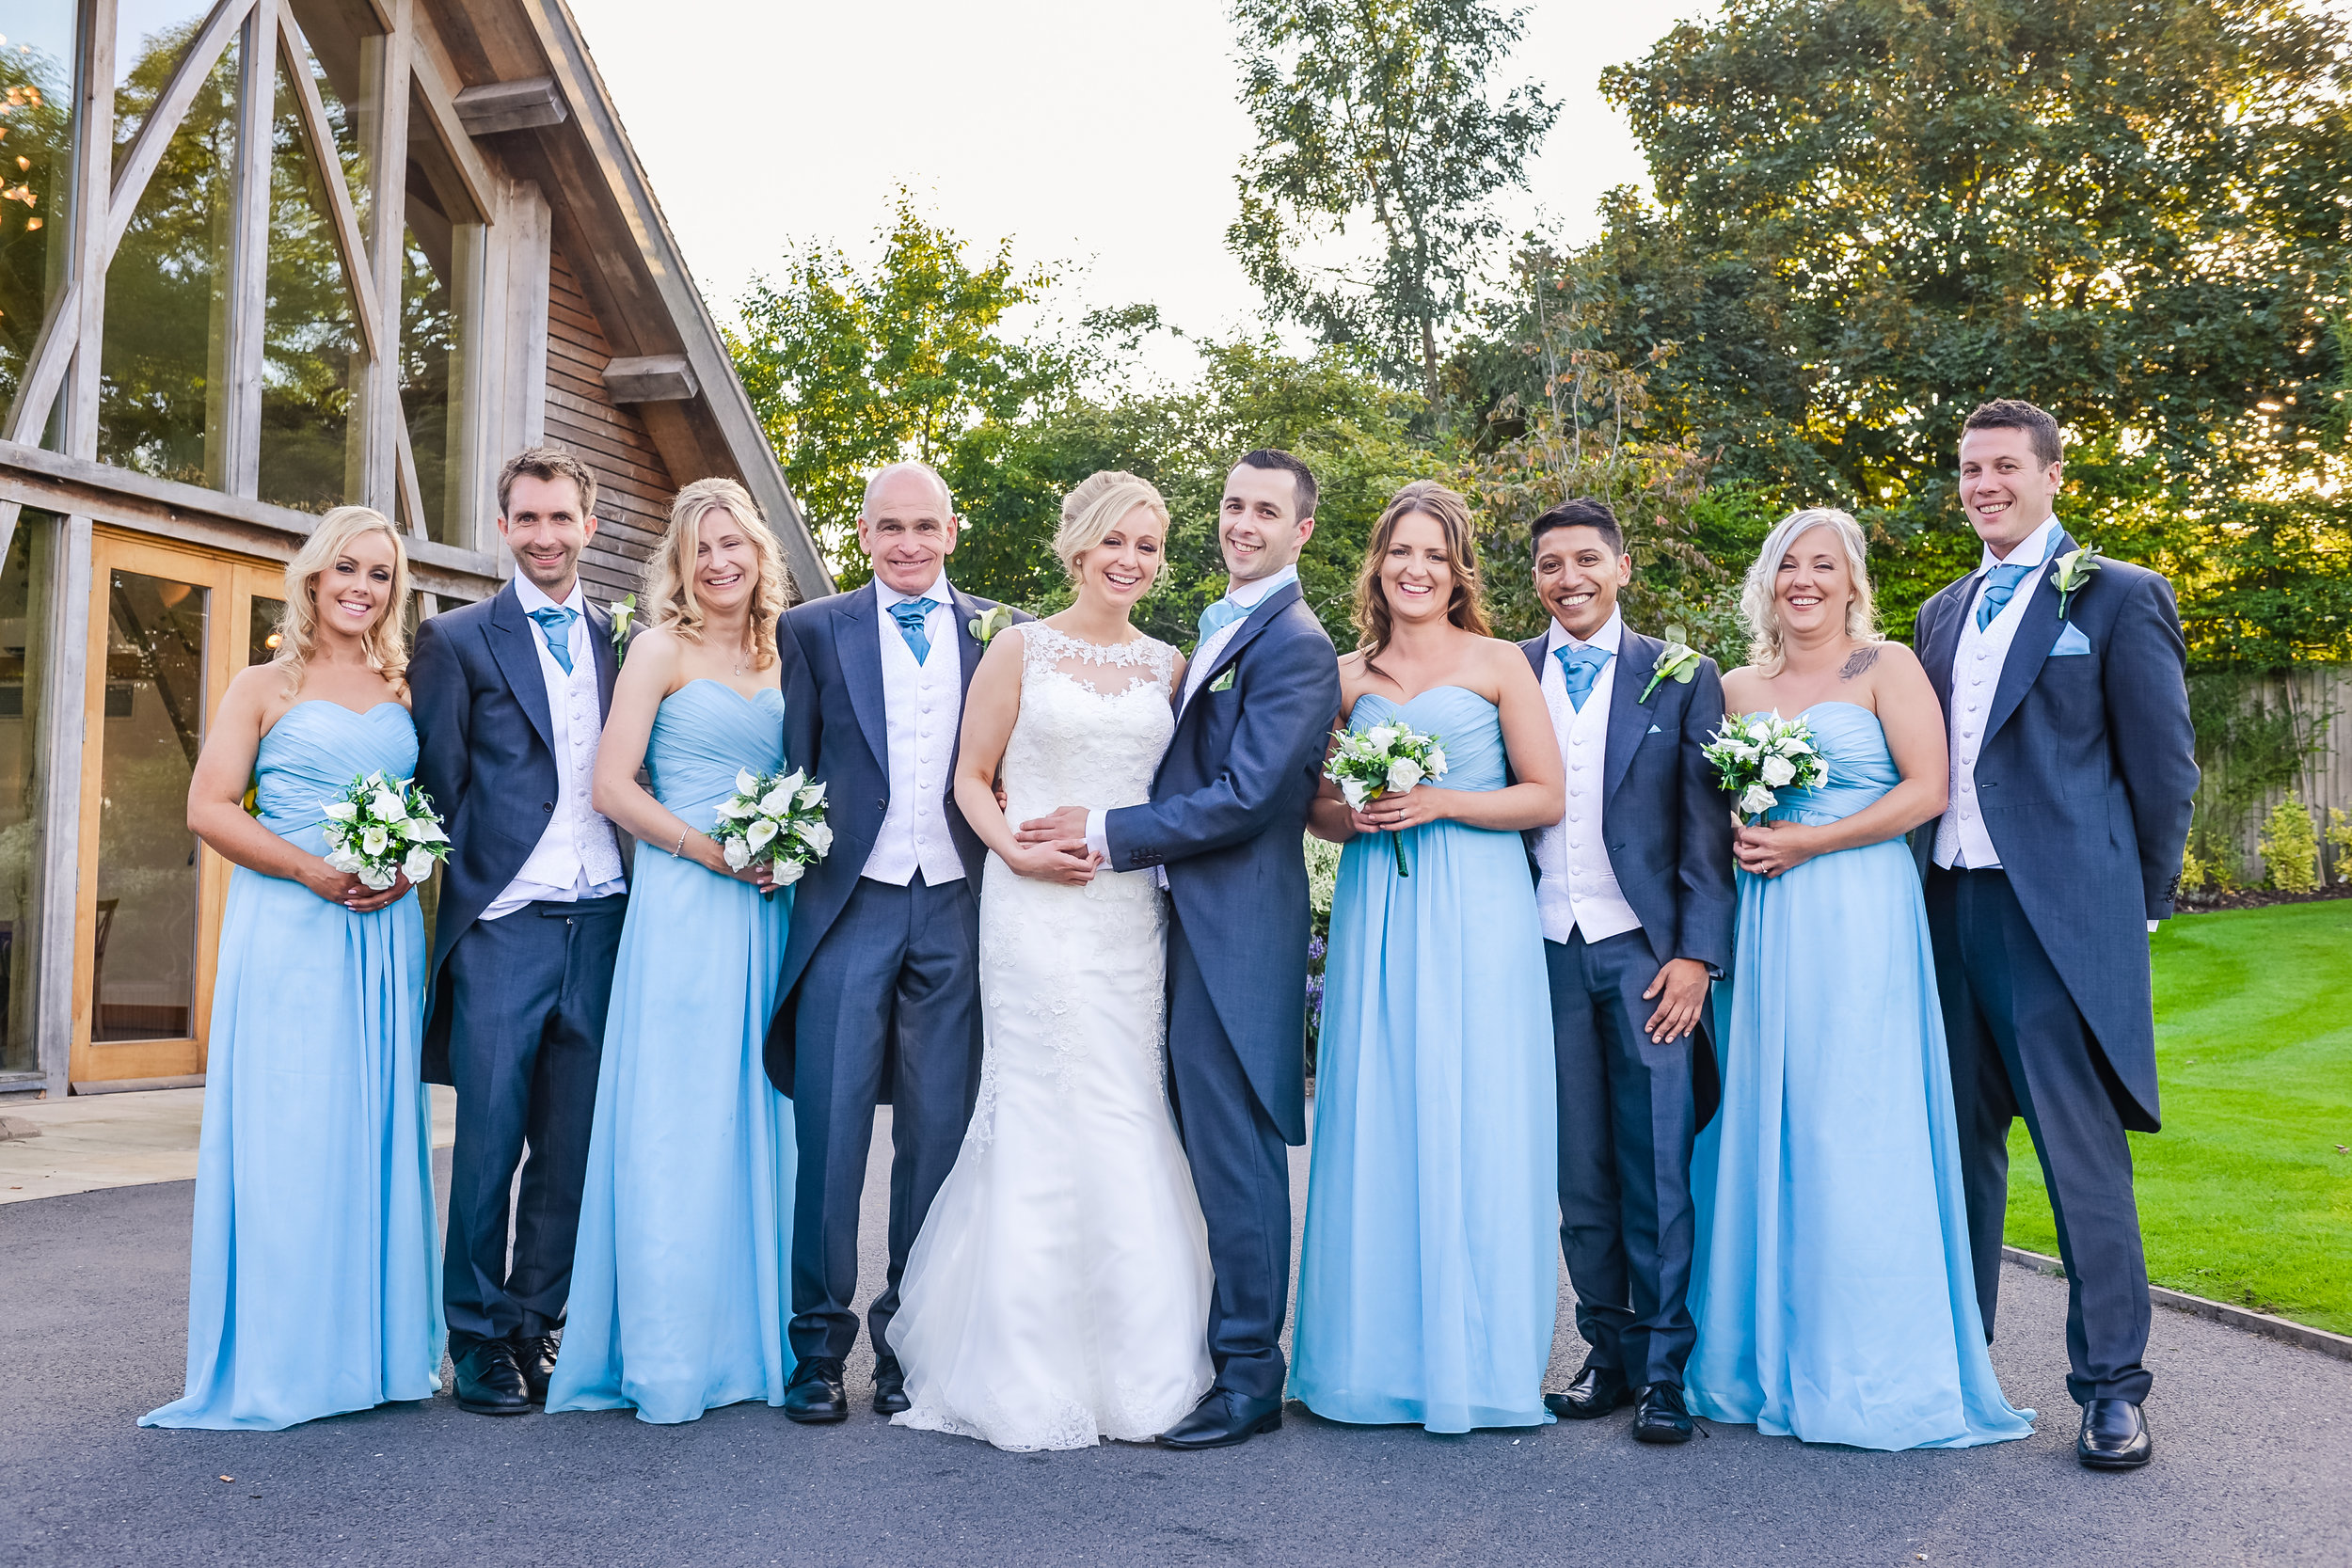 Wedding photography posed group portraits